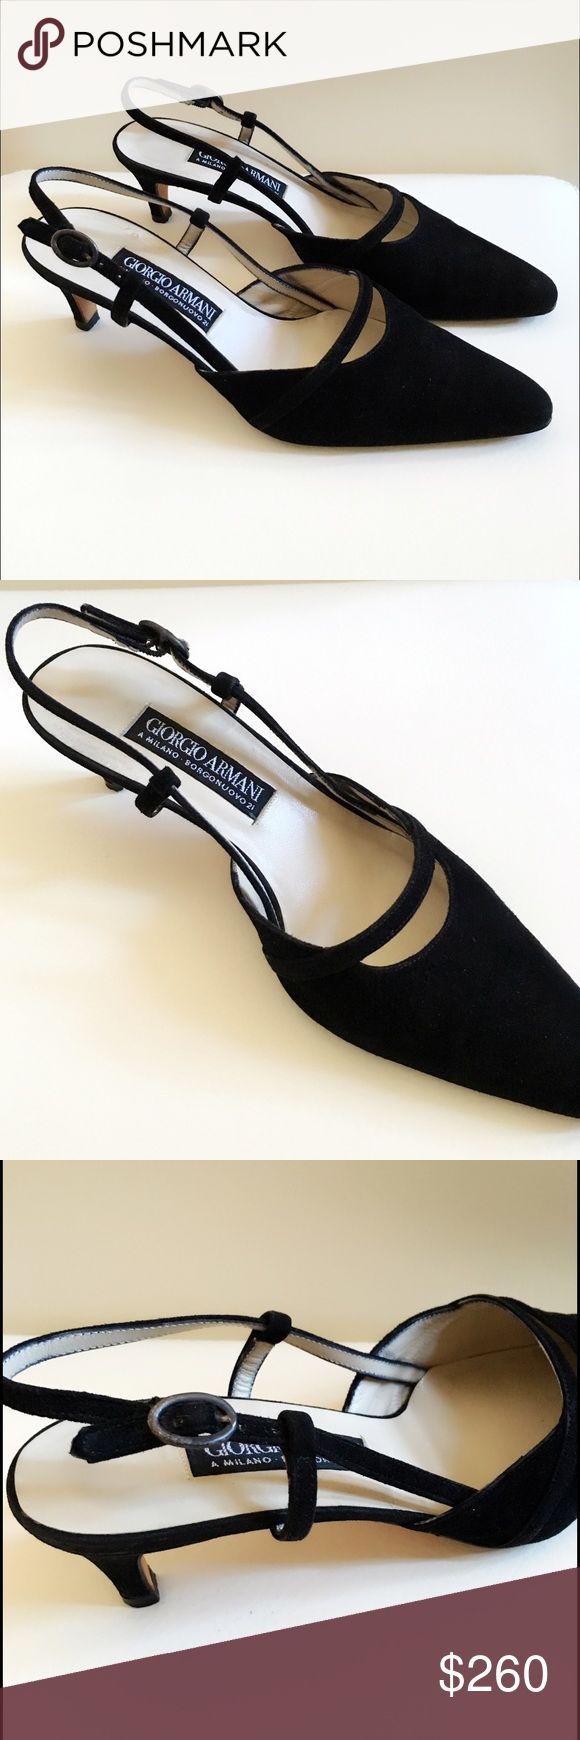 Giorgio Armani Black Suede Slingback Heels Black suede. Kitten heels (2 inches). Pointed toe. Giorgio Armani Shoes Heels